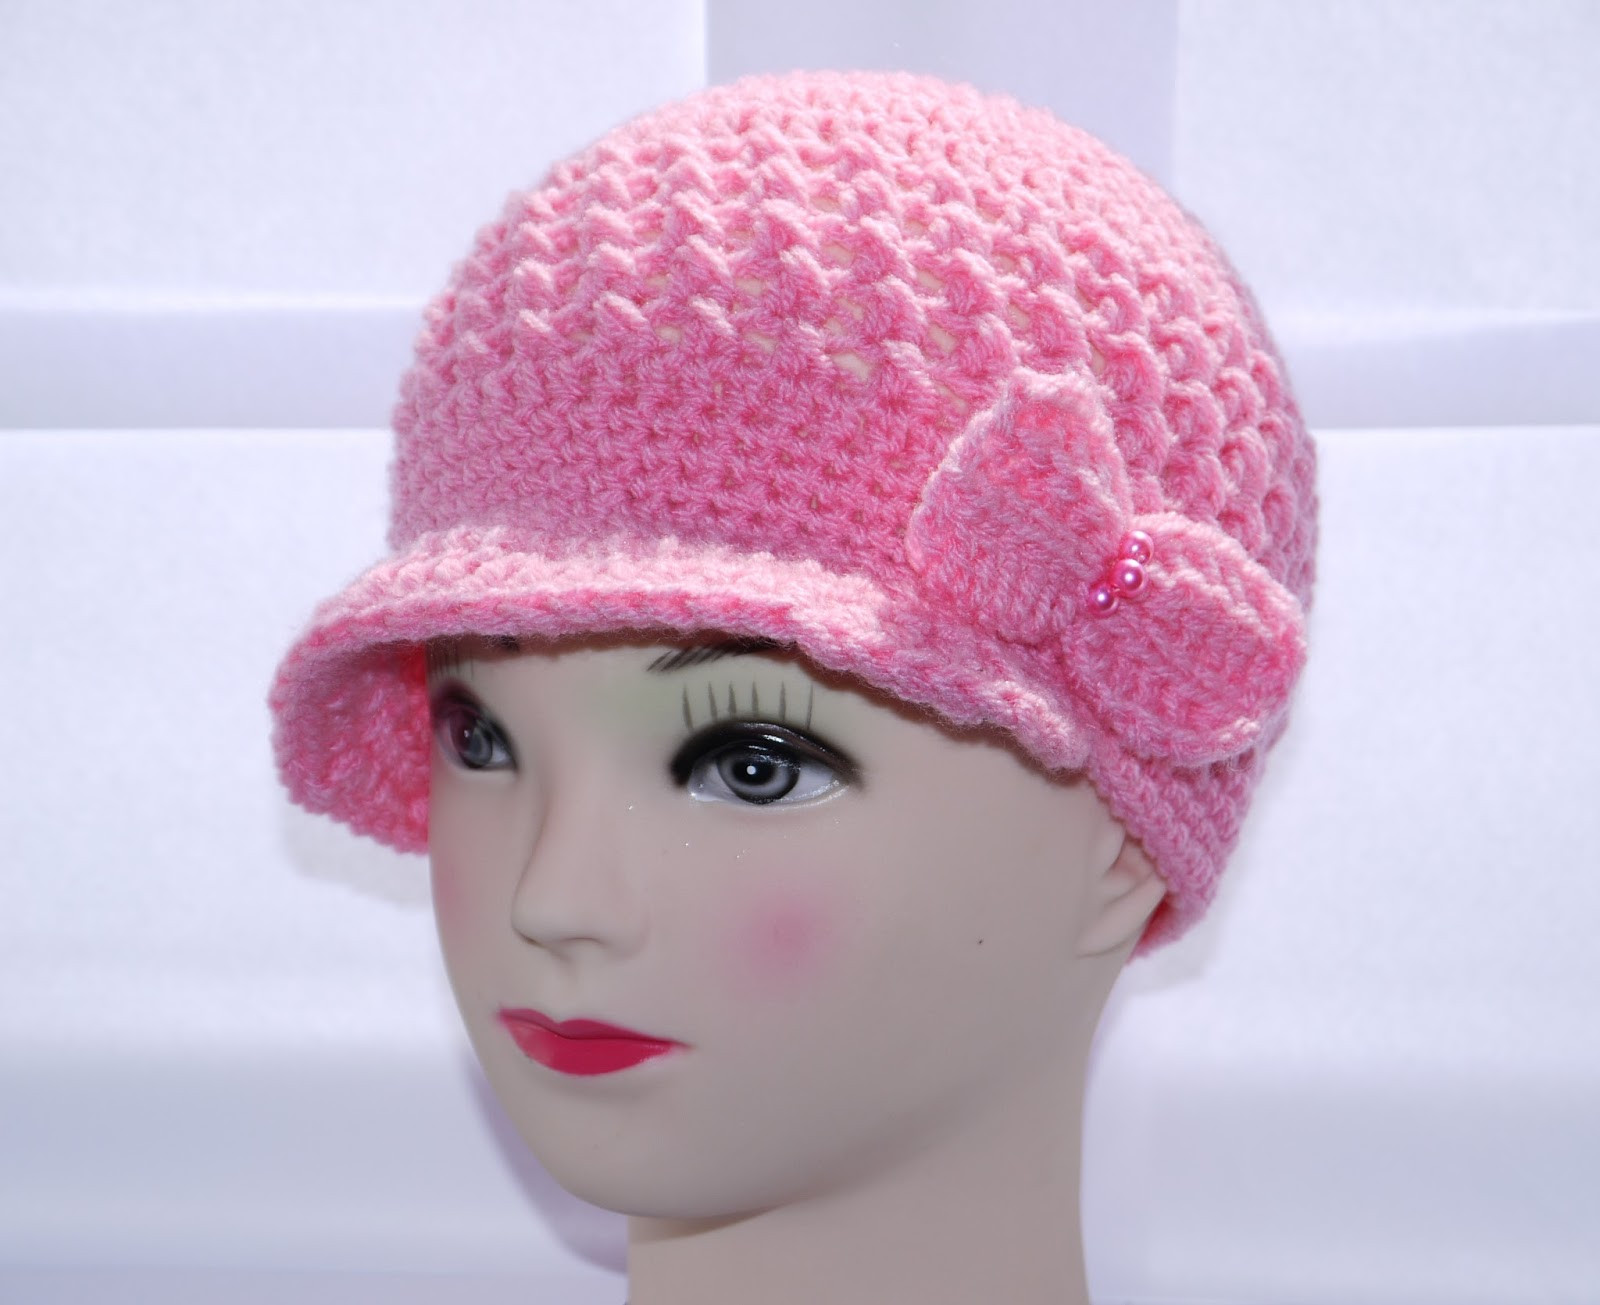 Crochet Girl Hat New Plooshy Handmade Crochet Newsboy Pageboy Girl Hat Of Superb 47 Pics Crochet Girl Hat